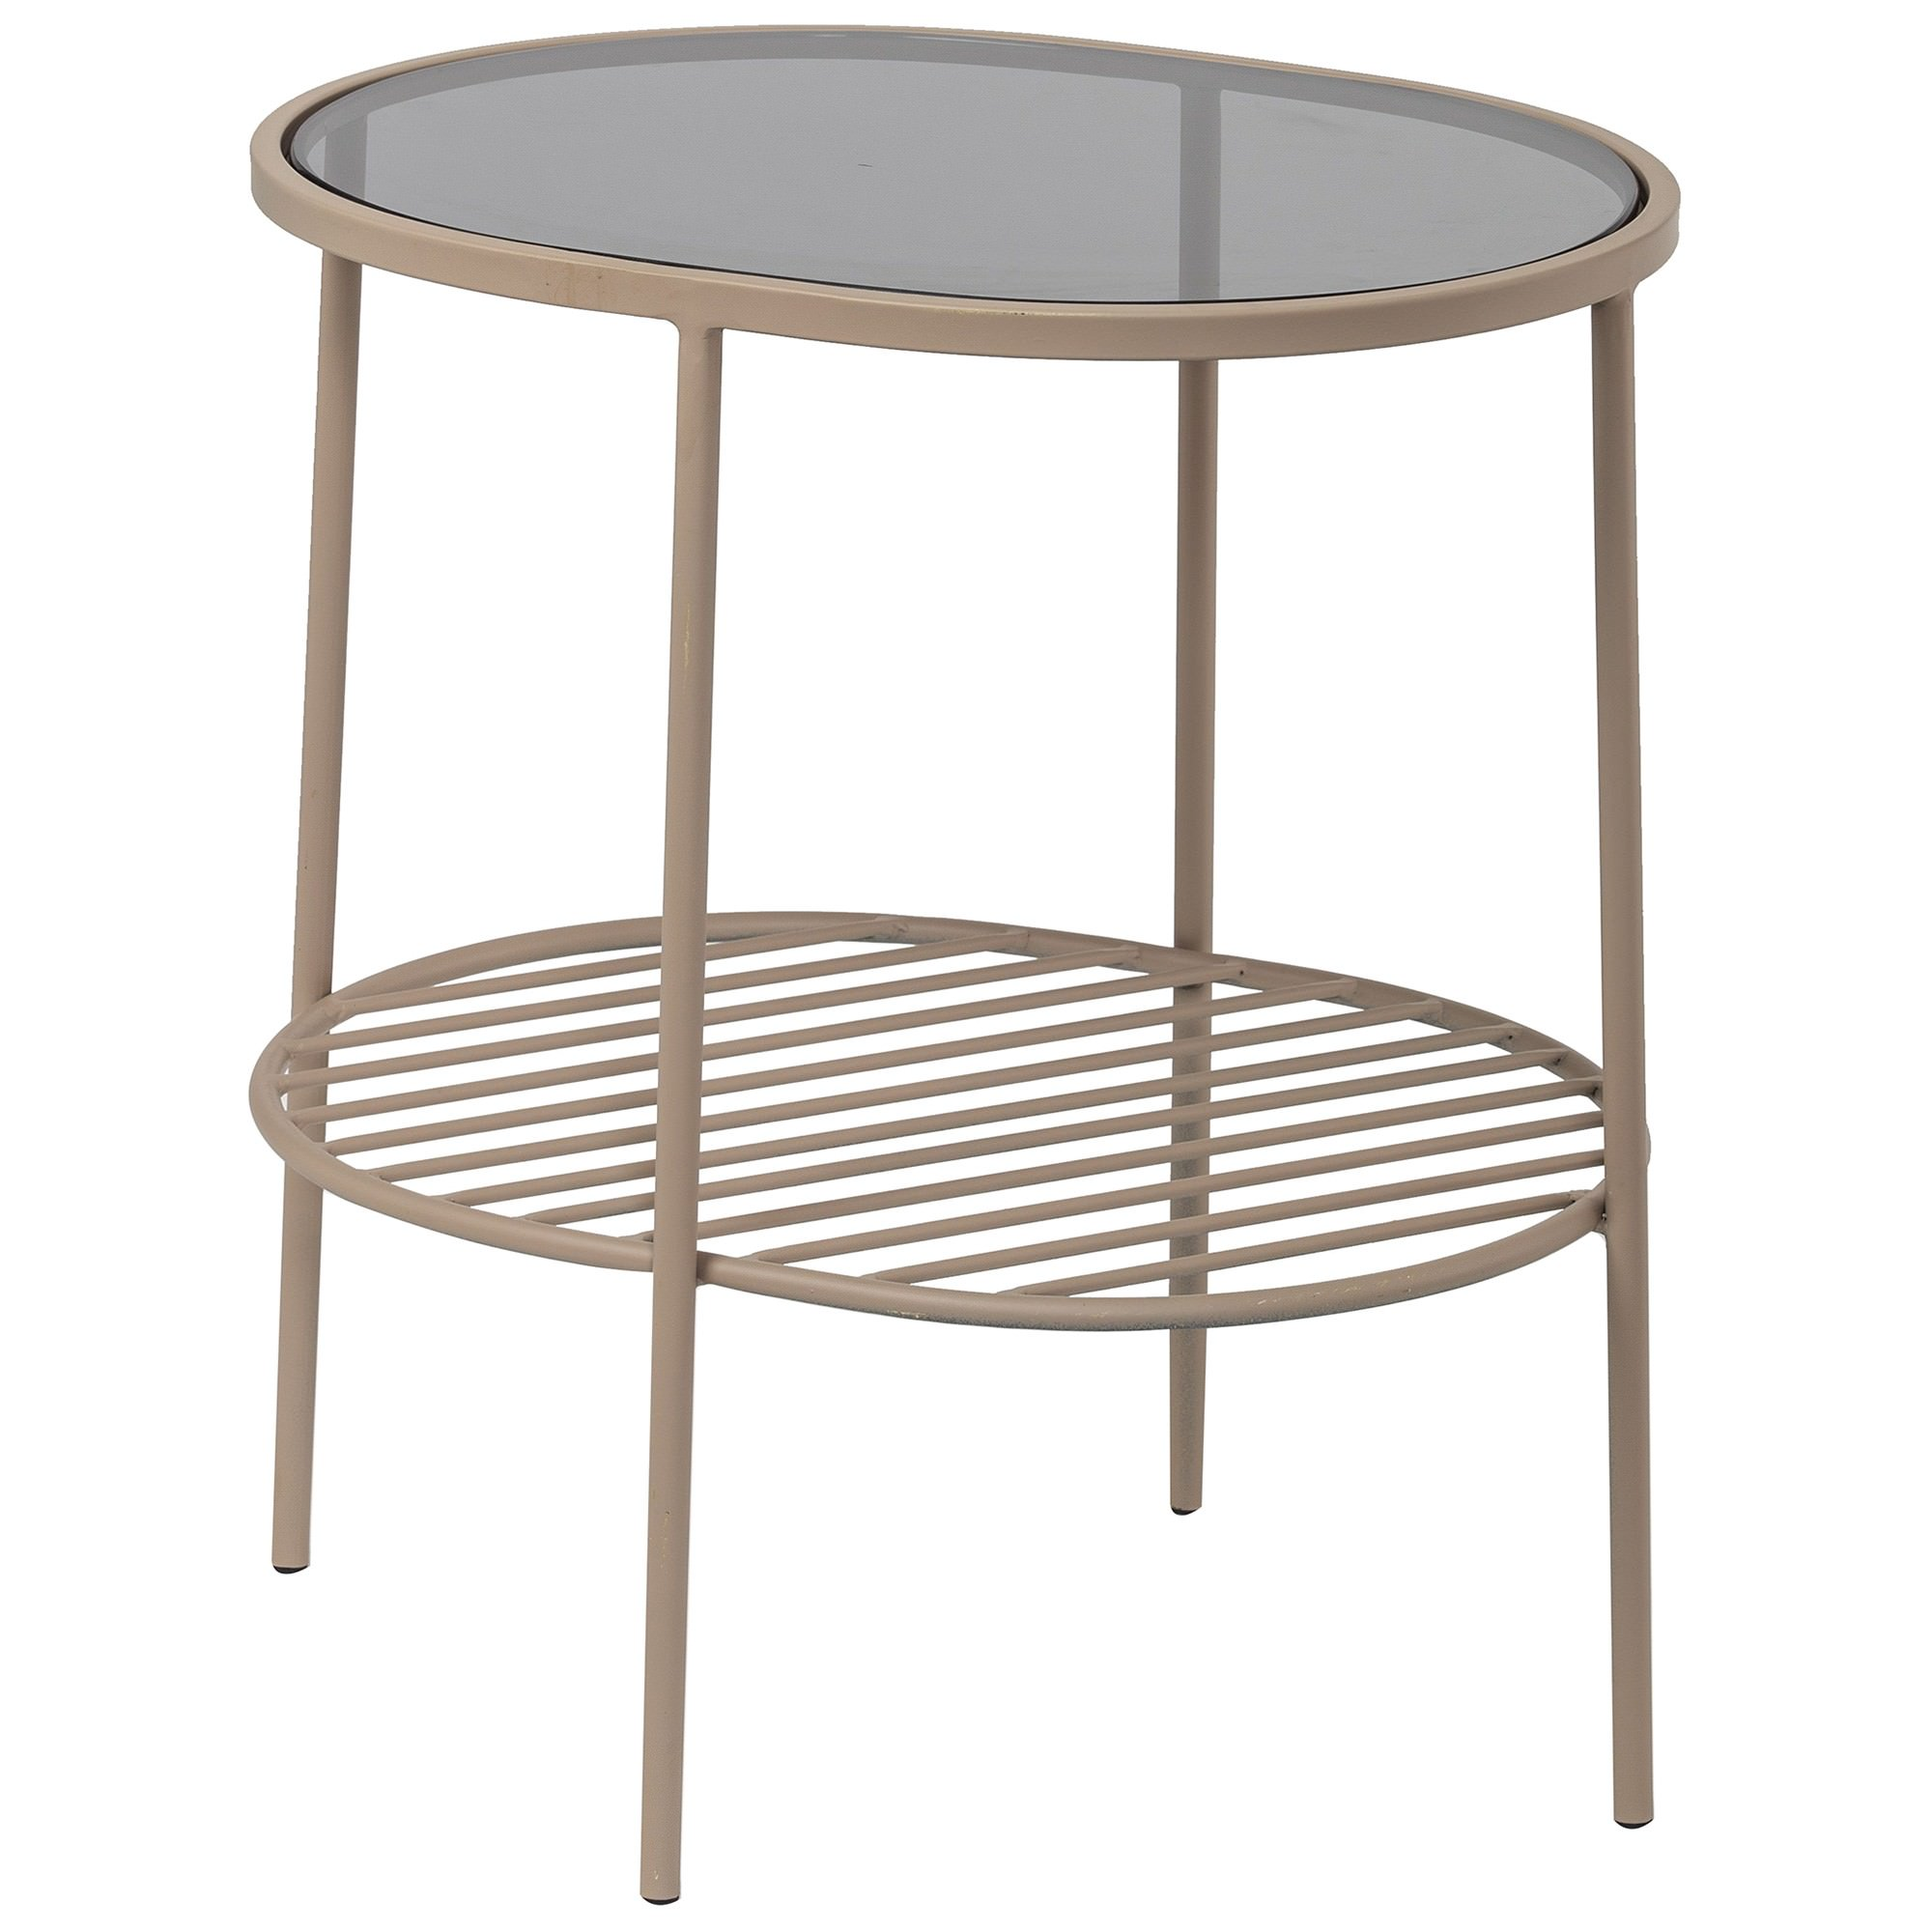 Aili Metal & Glass Side Table, Pale Pink